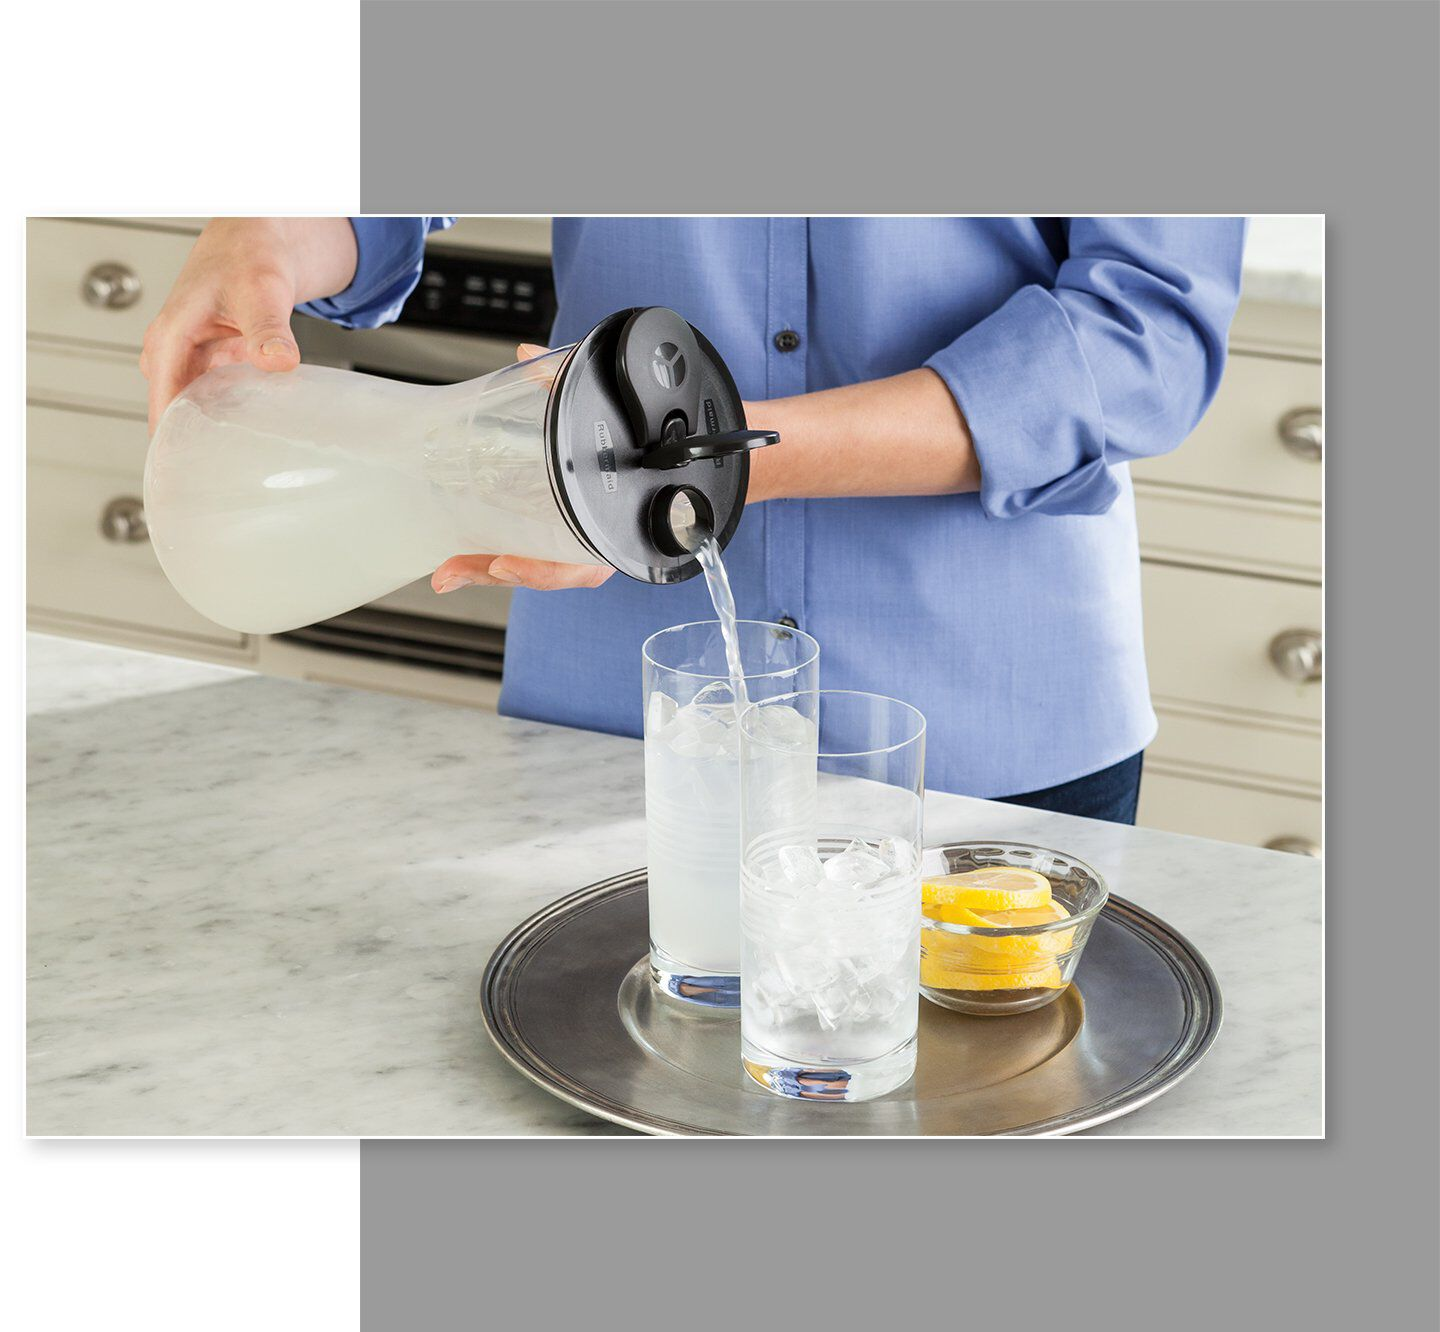 Rubbermaid carafe pitcher lemonade